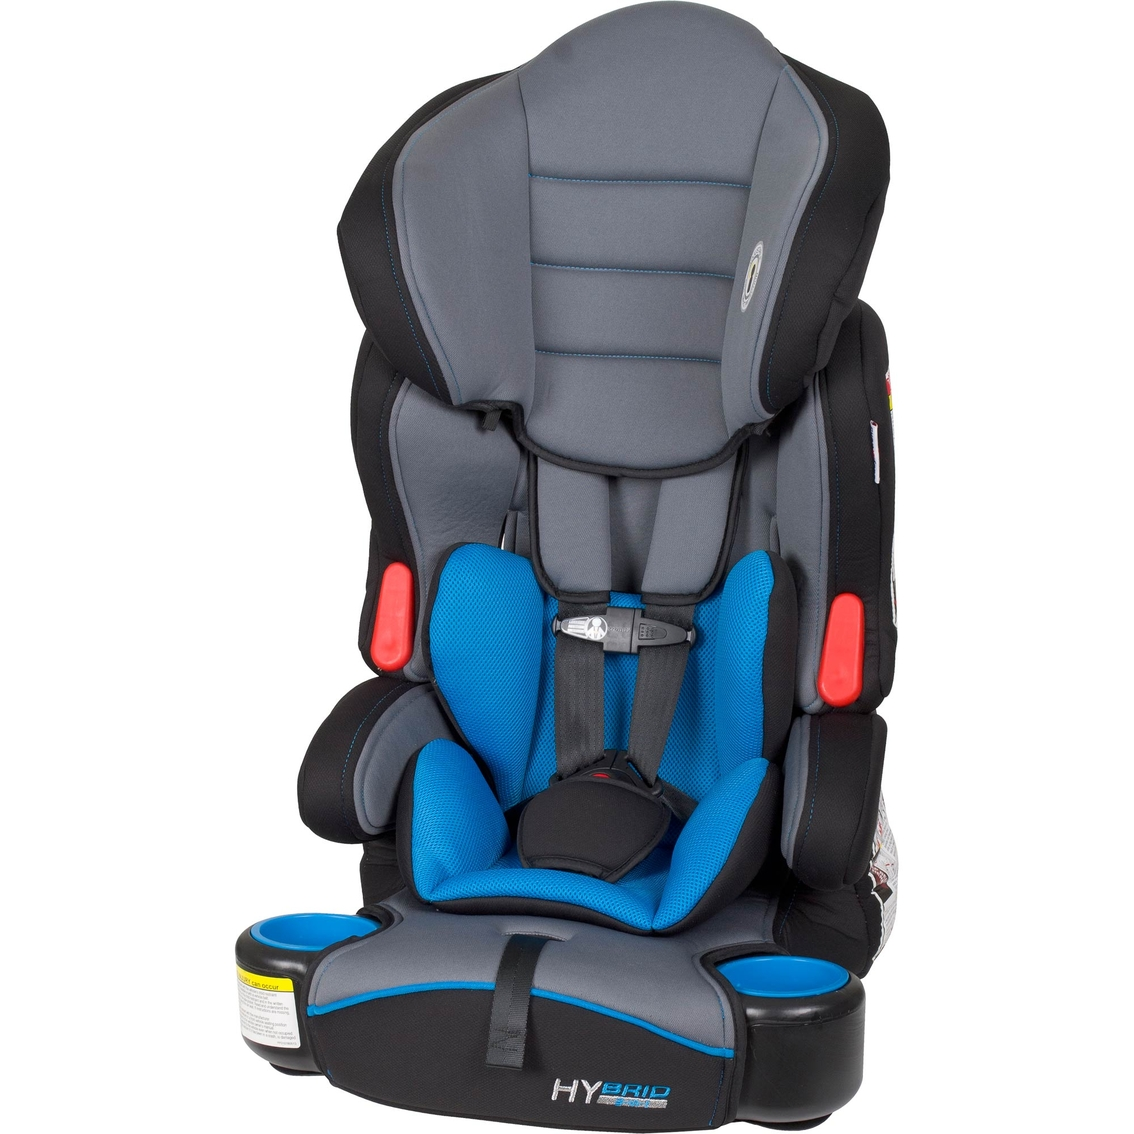 baby trend hybrid ozone 3 in 1 car seat convertible seats baby toys shop the exchange. Black Bedroom Furniture Sets. Home Design Ideas